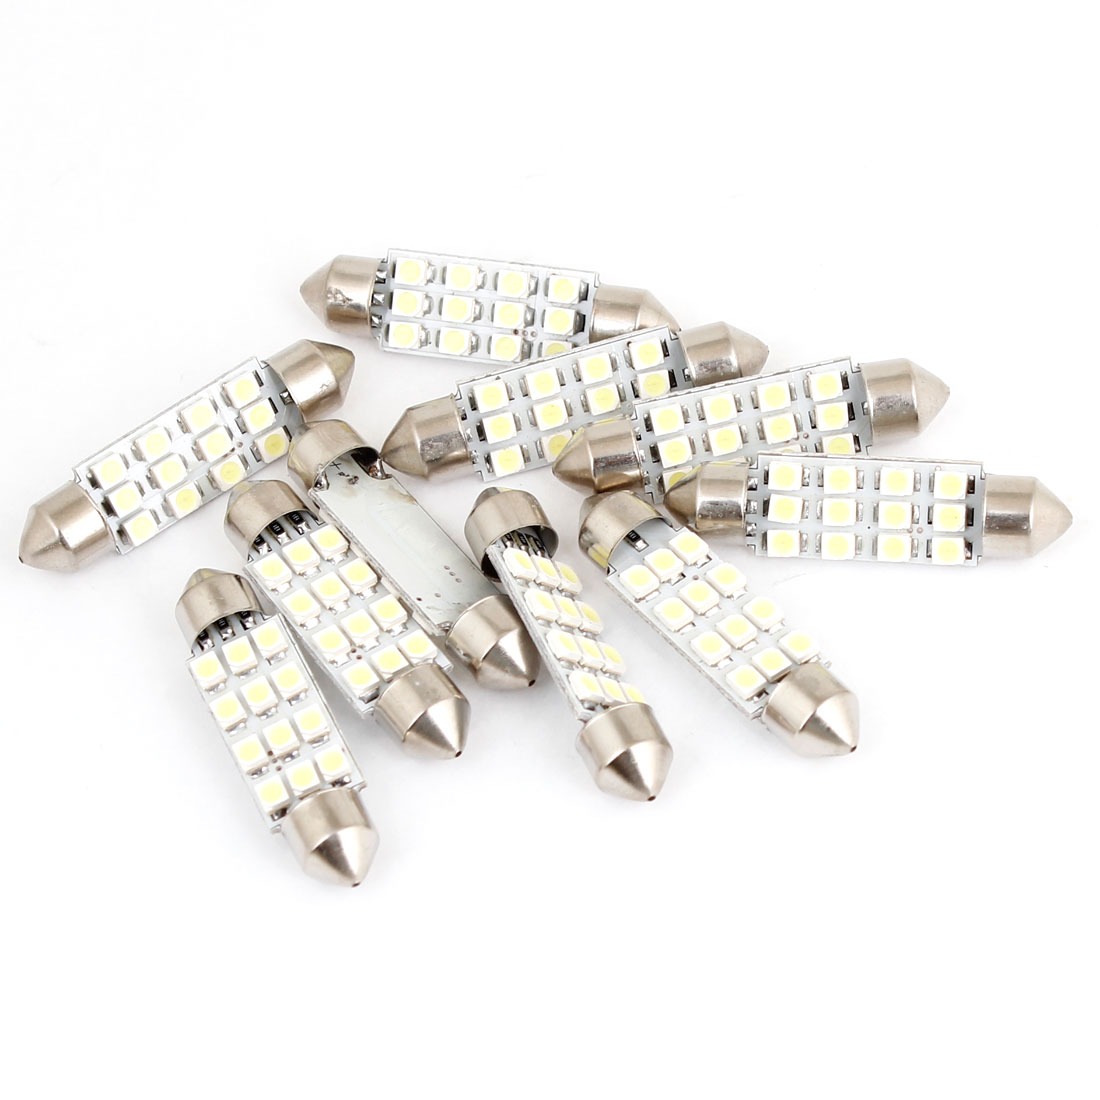 41mm White 12 1210 SMD Festoon LED Light Dome Map Lamp Bulb 10pcs for Auto